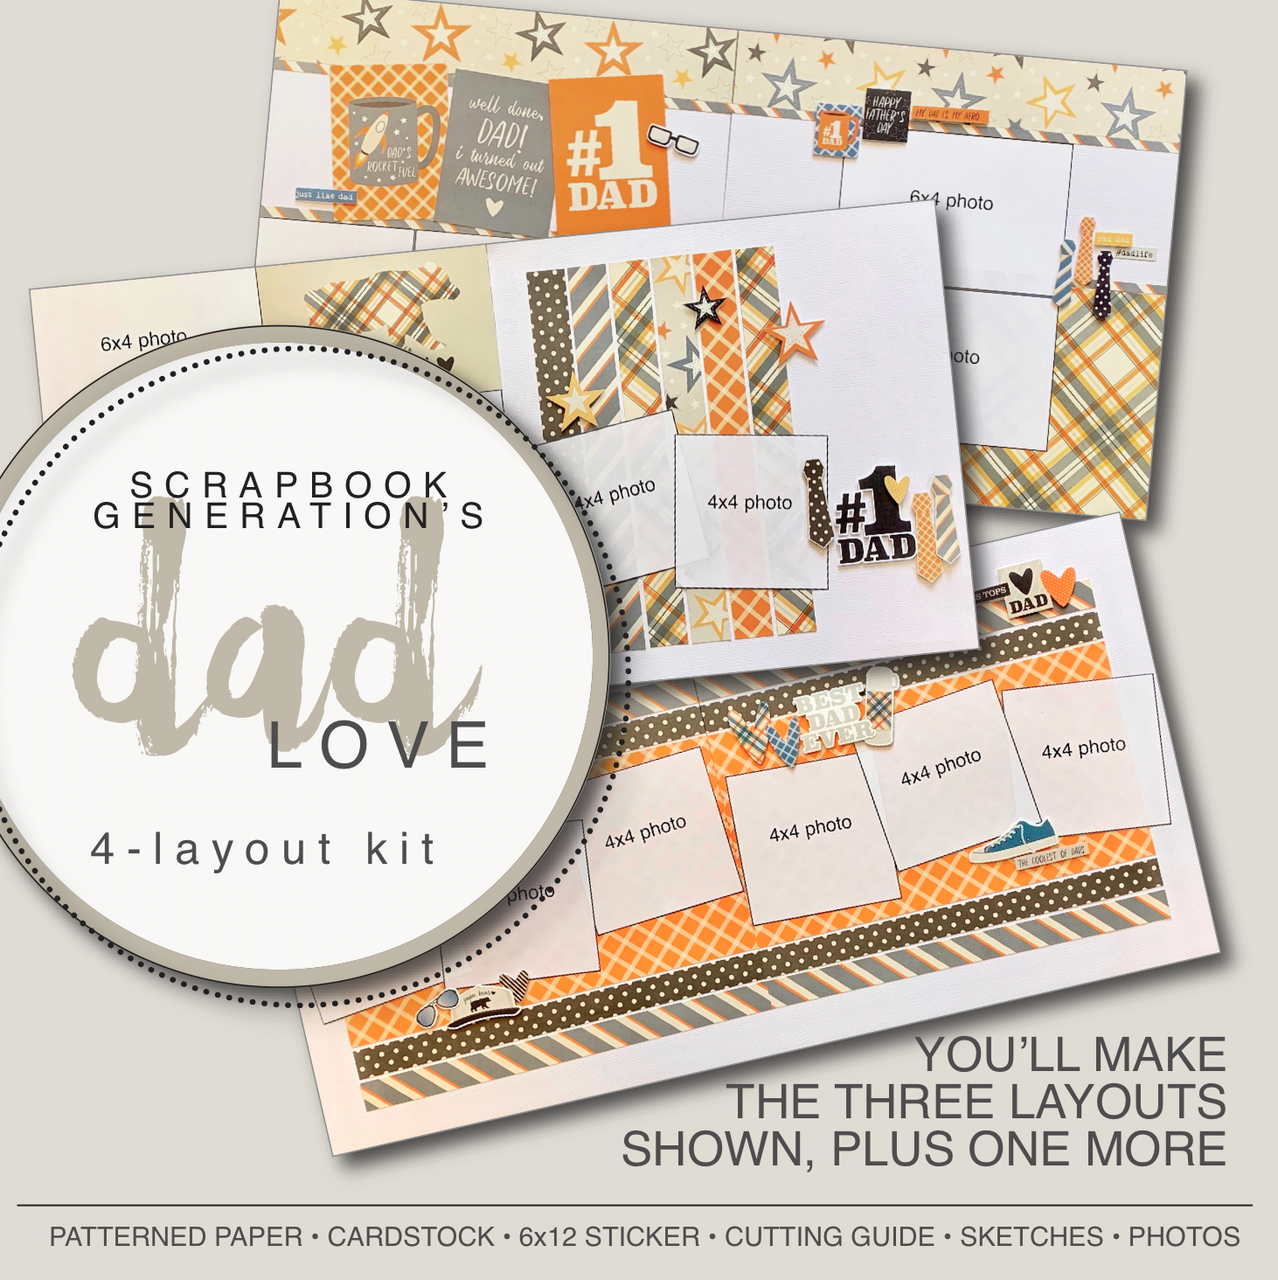 Scrapbook Generation Scrapbook Generation Sketches for Scrapbooking Travel 1